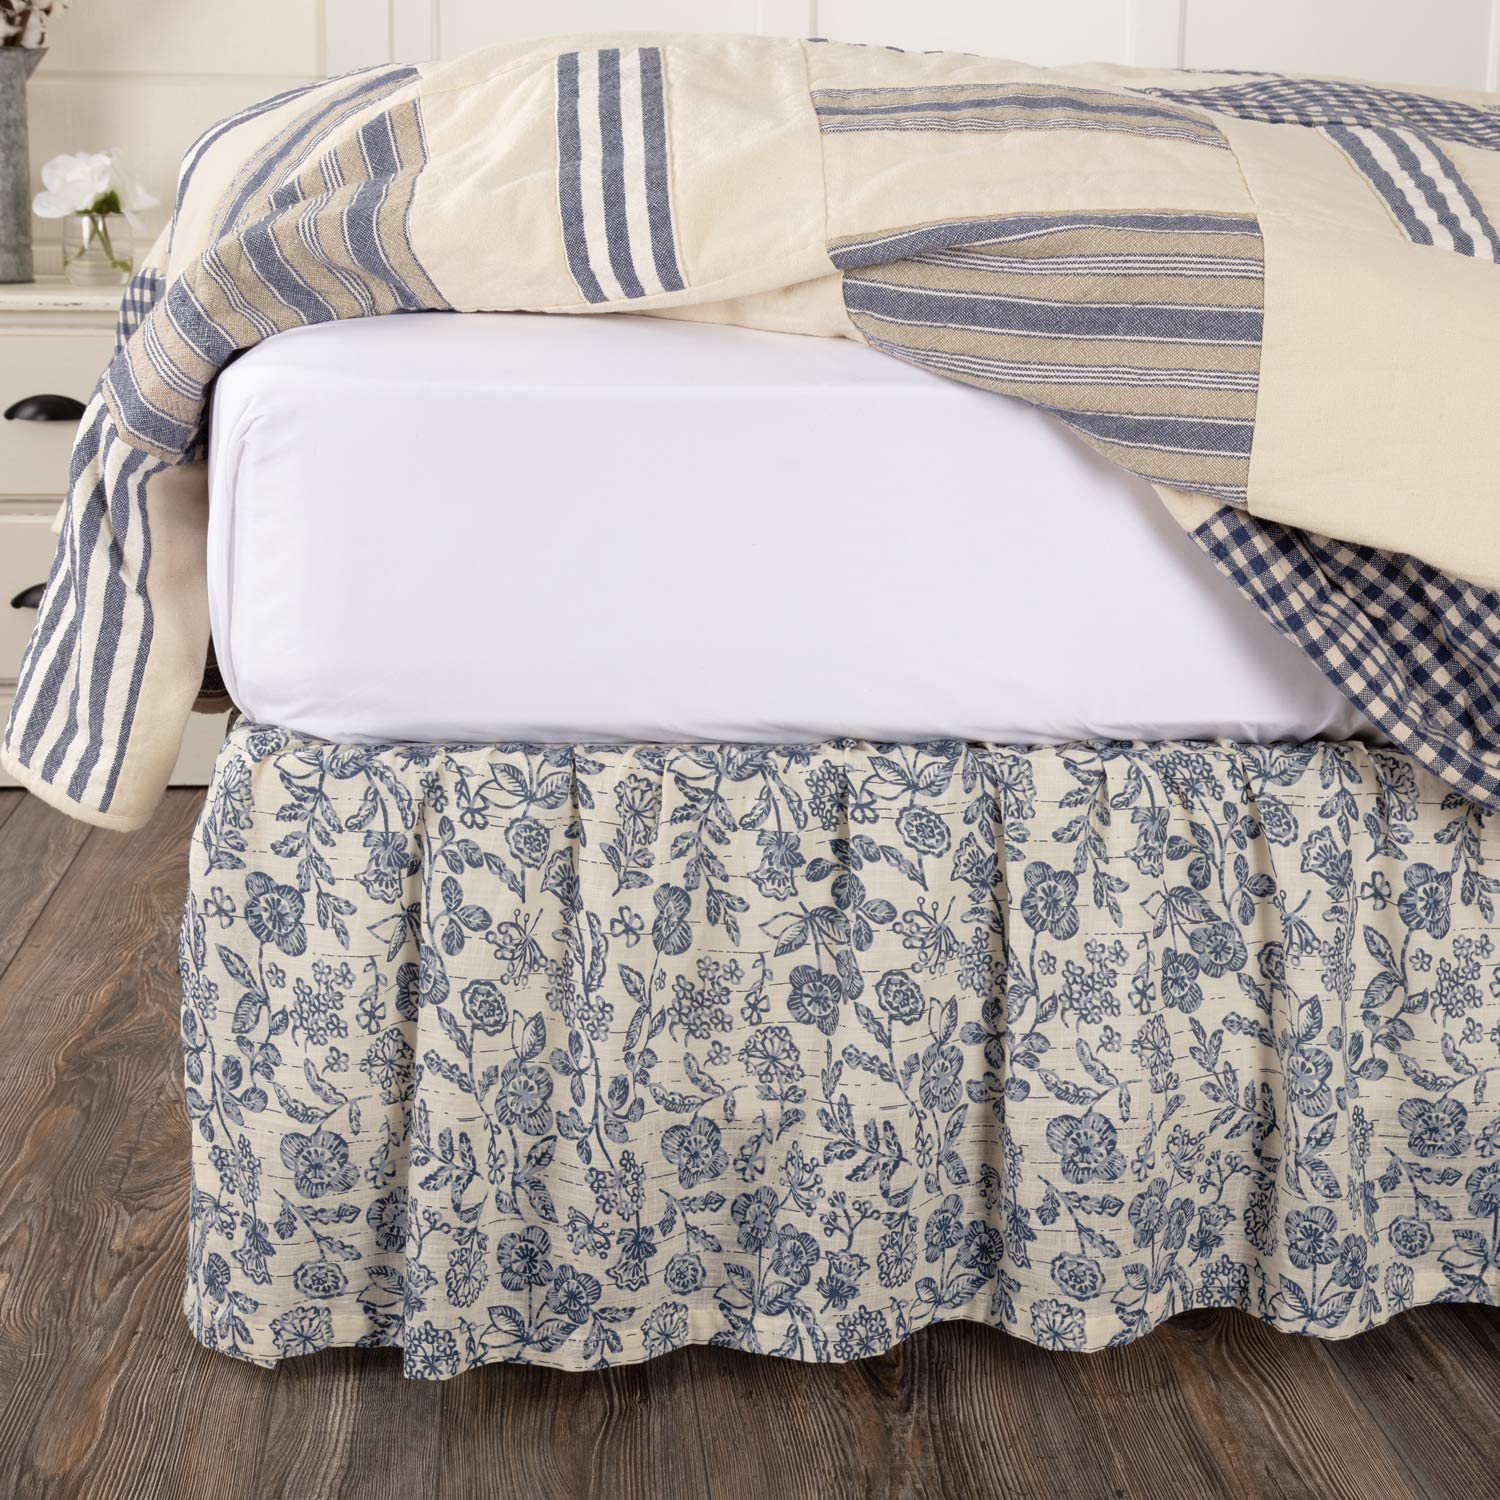 """Piper Classics Doylestown Twin Size Floral Bed Skirt w/ 16"""" Drop, Blue & Cream Gathered Dust Ruffle, Country Cottage, Vintage Farmhouse Bedroom Décor"""